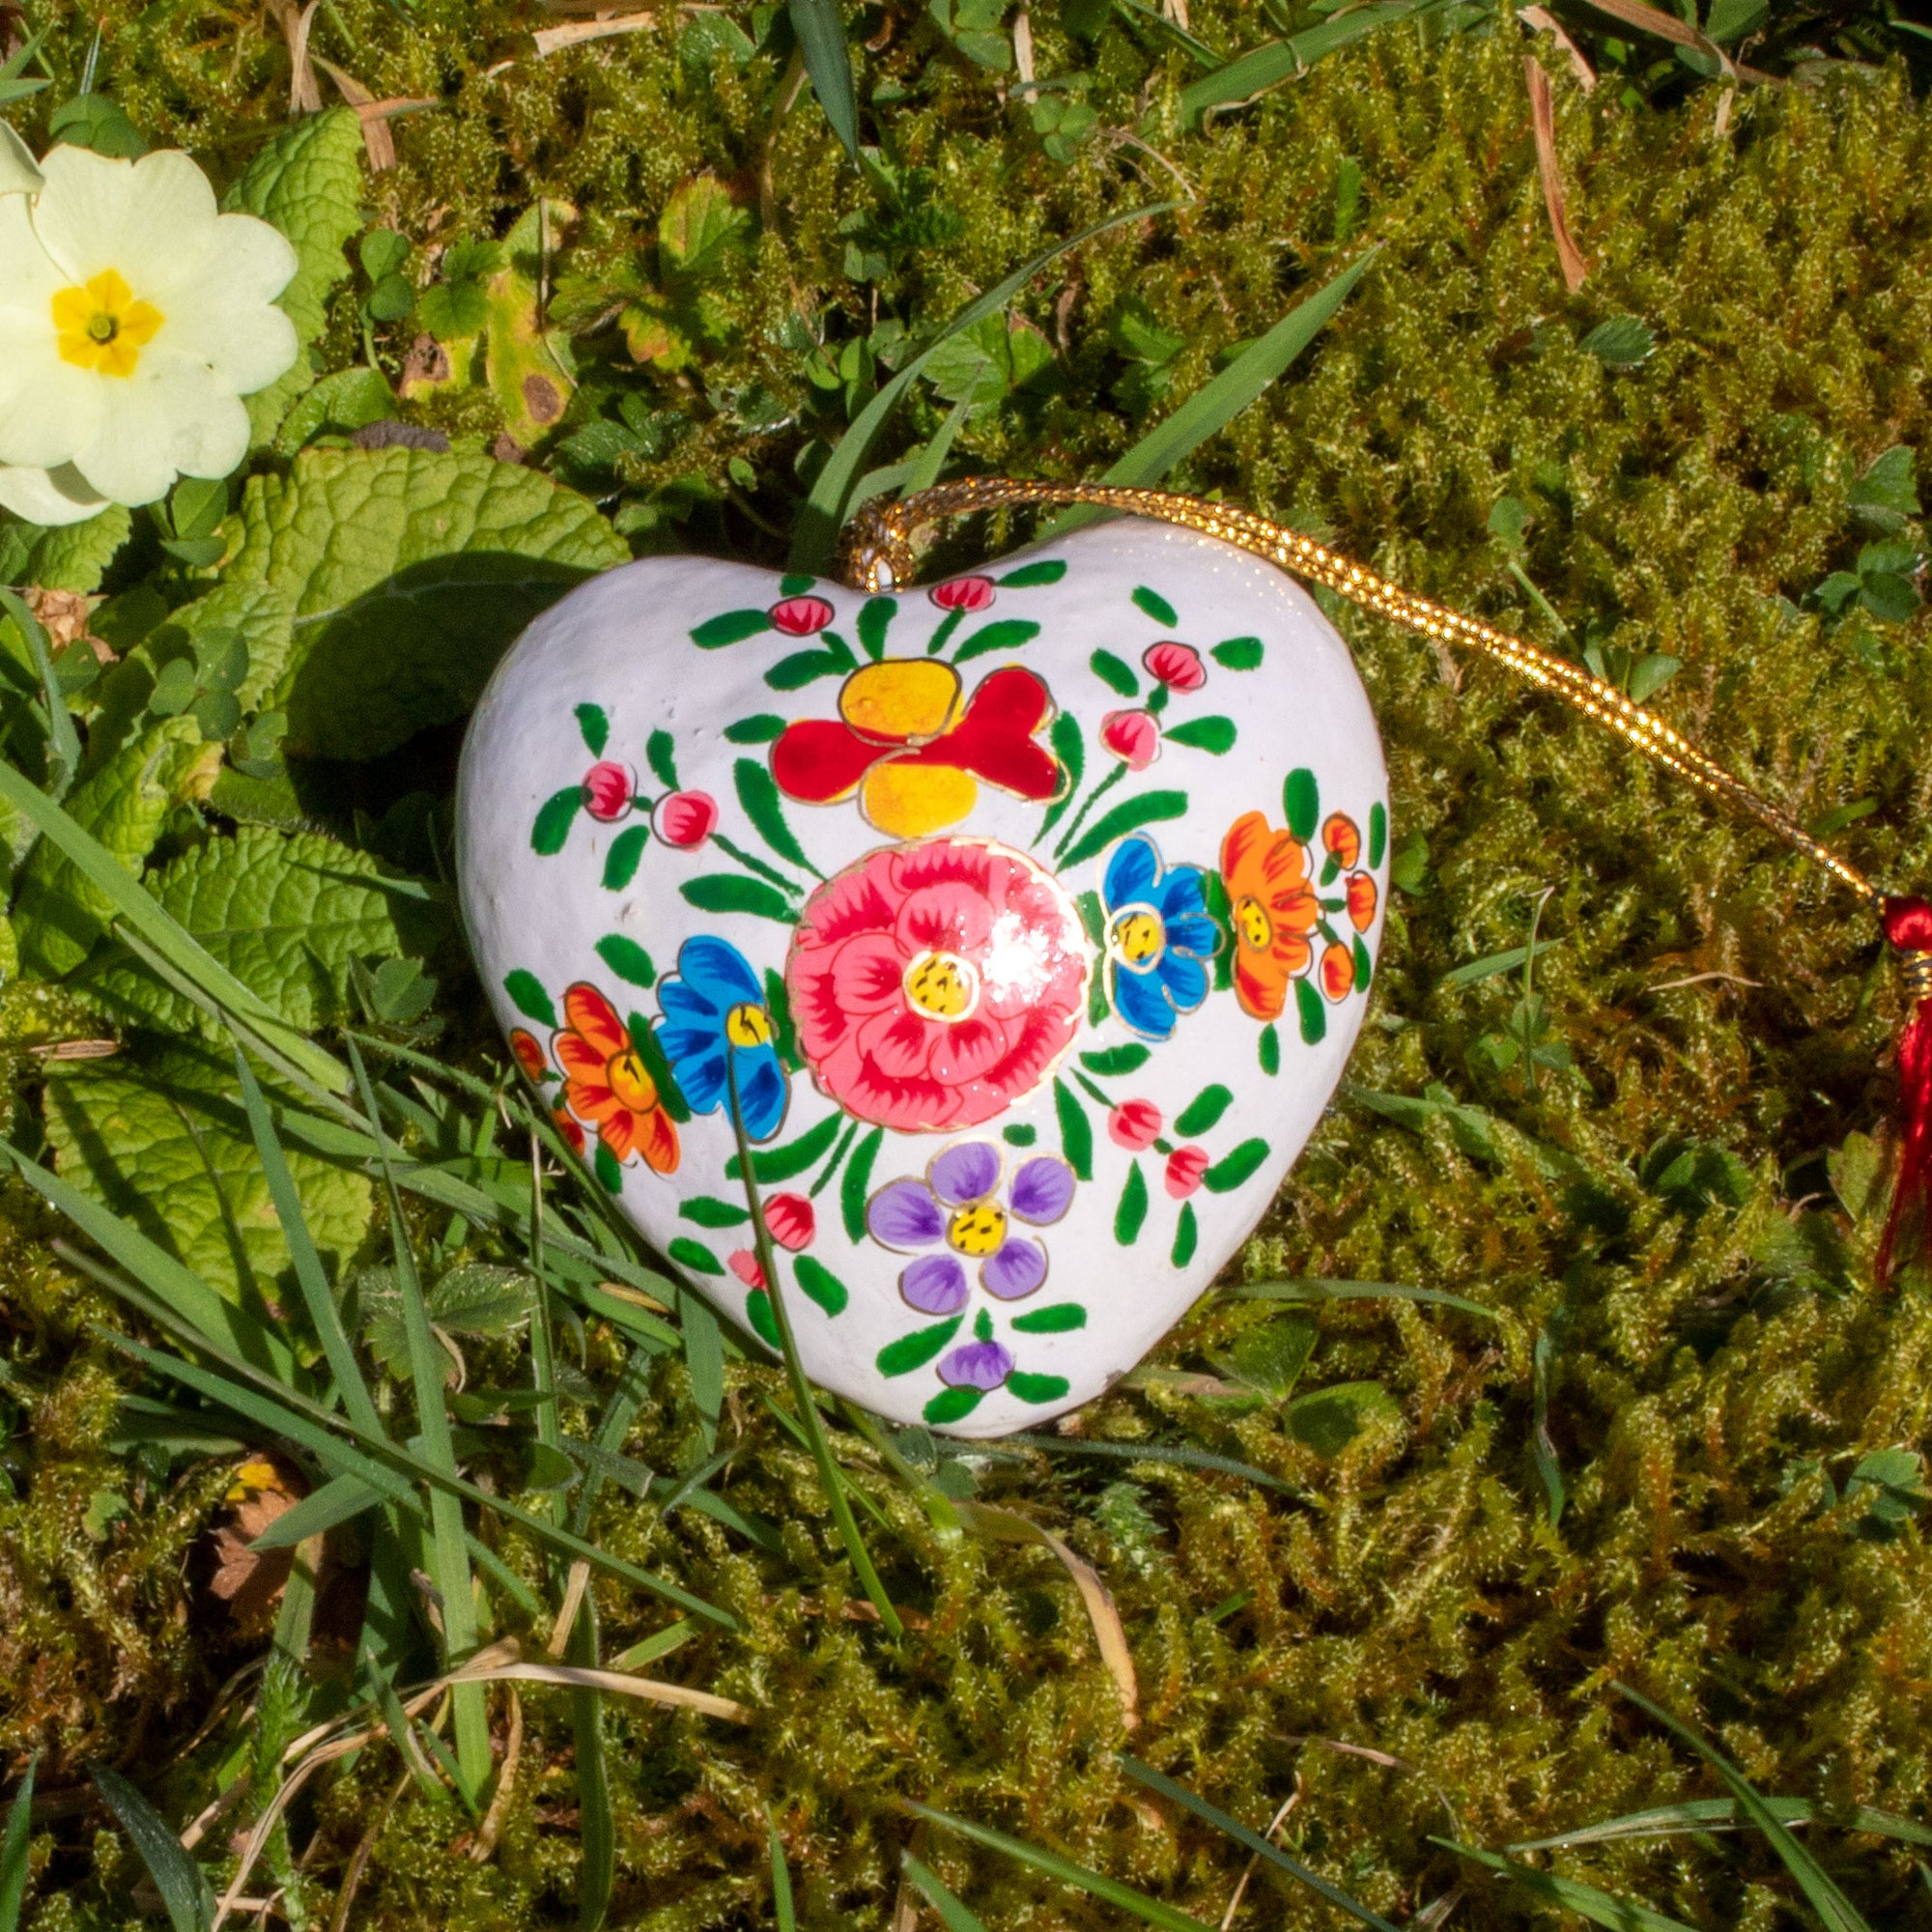 Spring/Easter Decoration - White Heart With Painted Flowers | Decoration - The Naughty Shrew